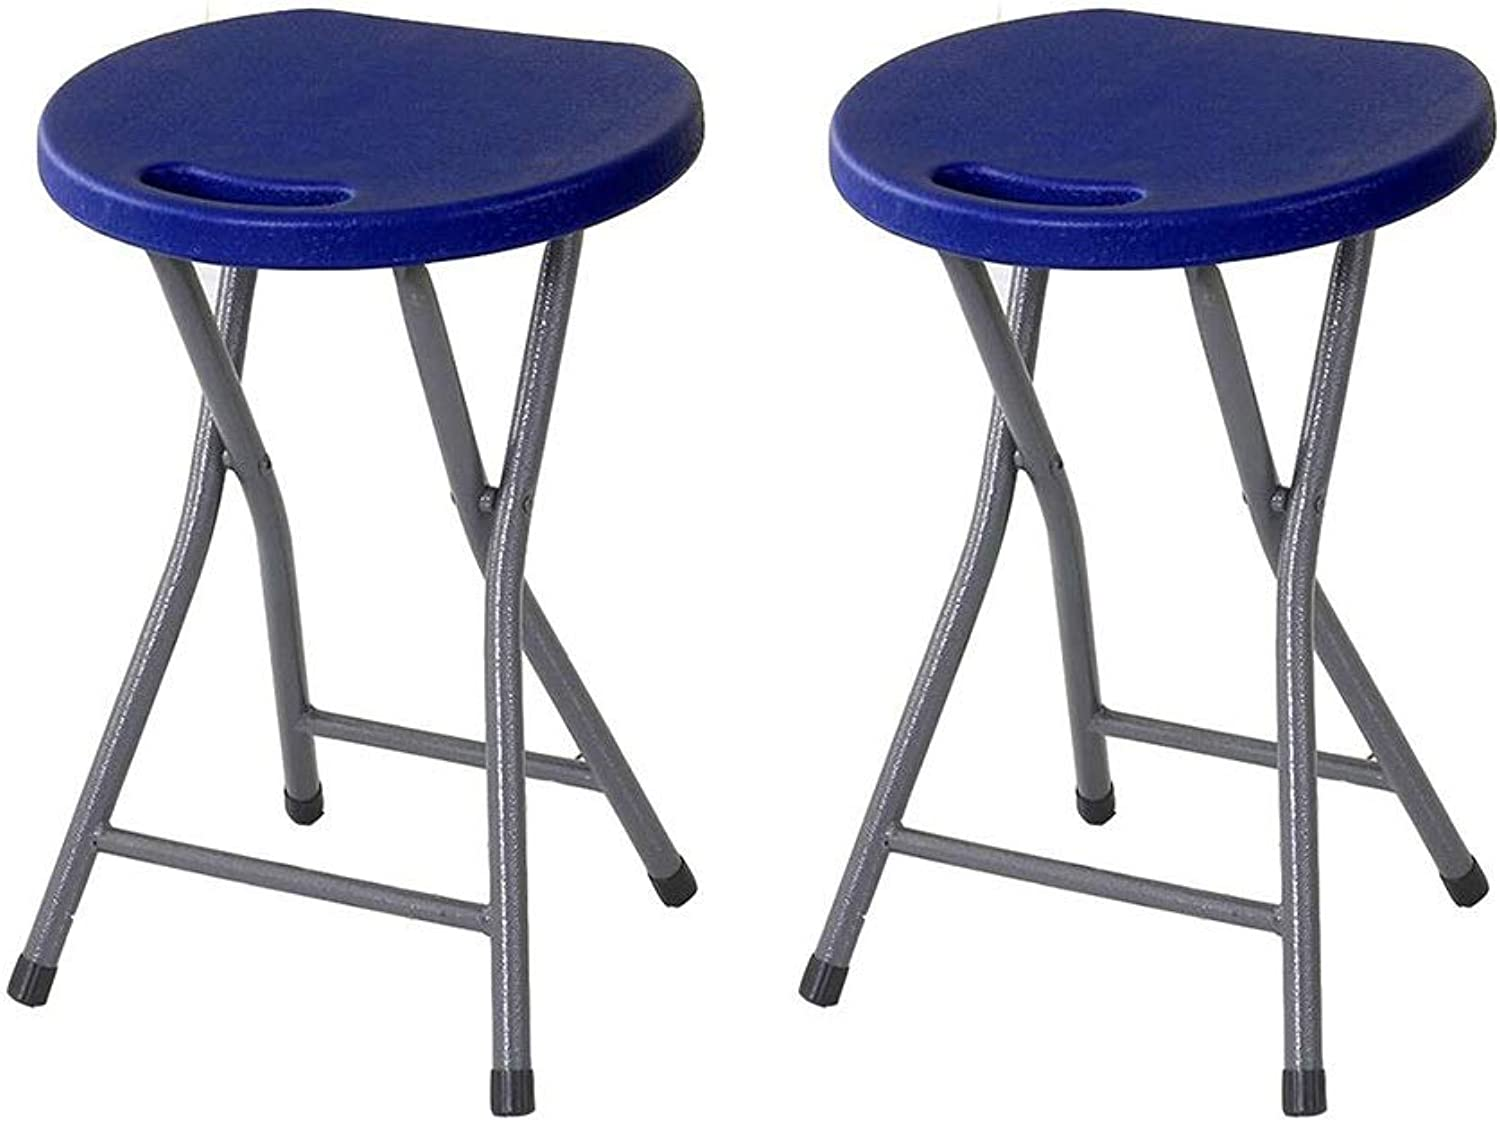 LBYMYB Stool Non-Slip Stacking Sturdy Chair Candy color Table Stool Furniture Chair (color   bluee1)